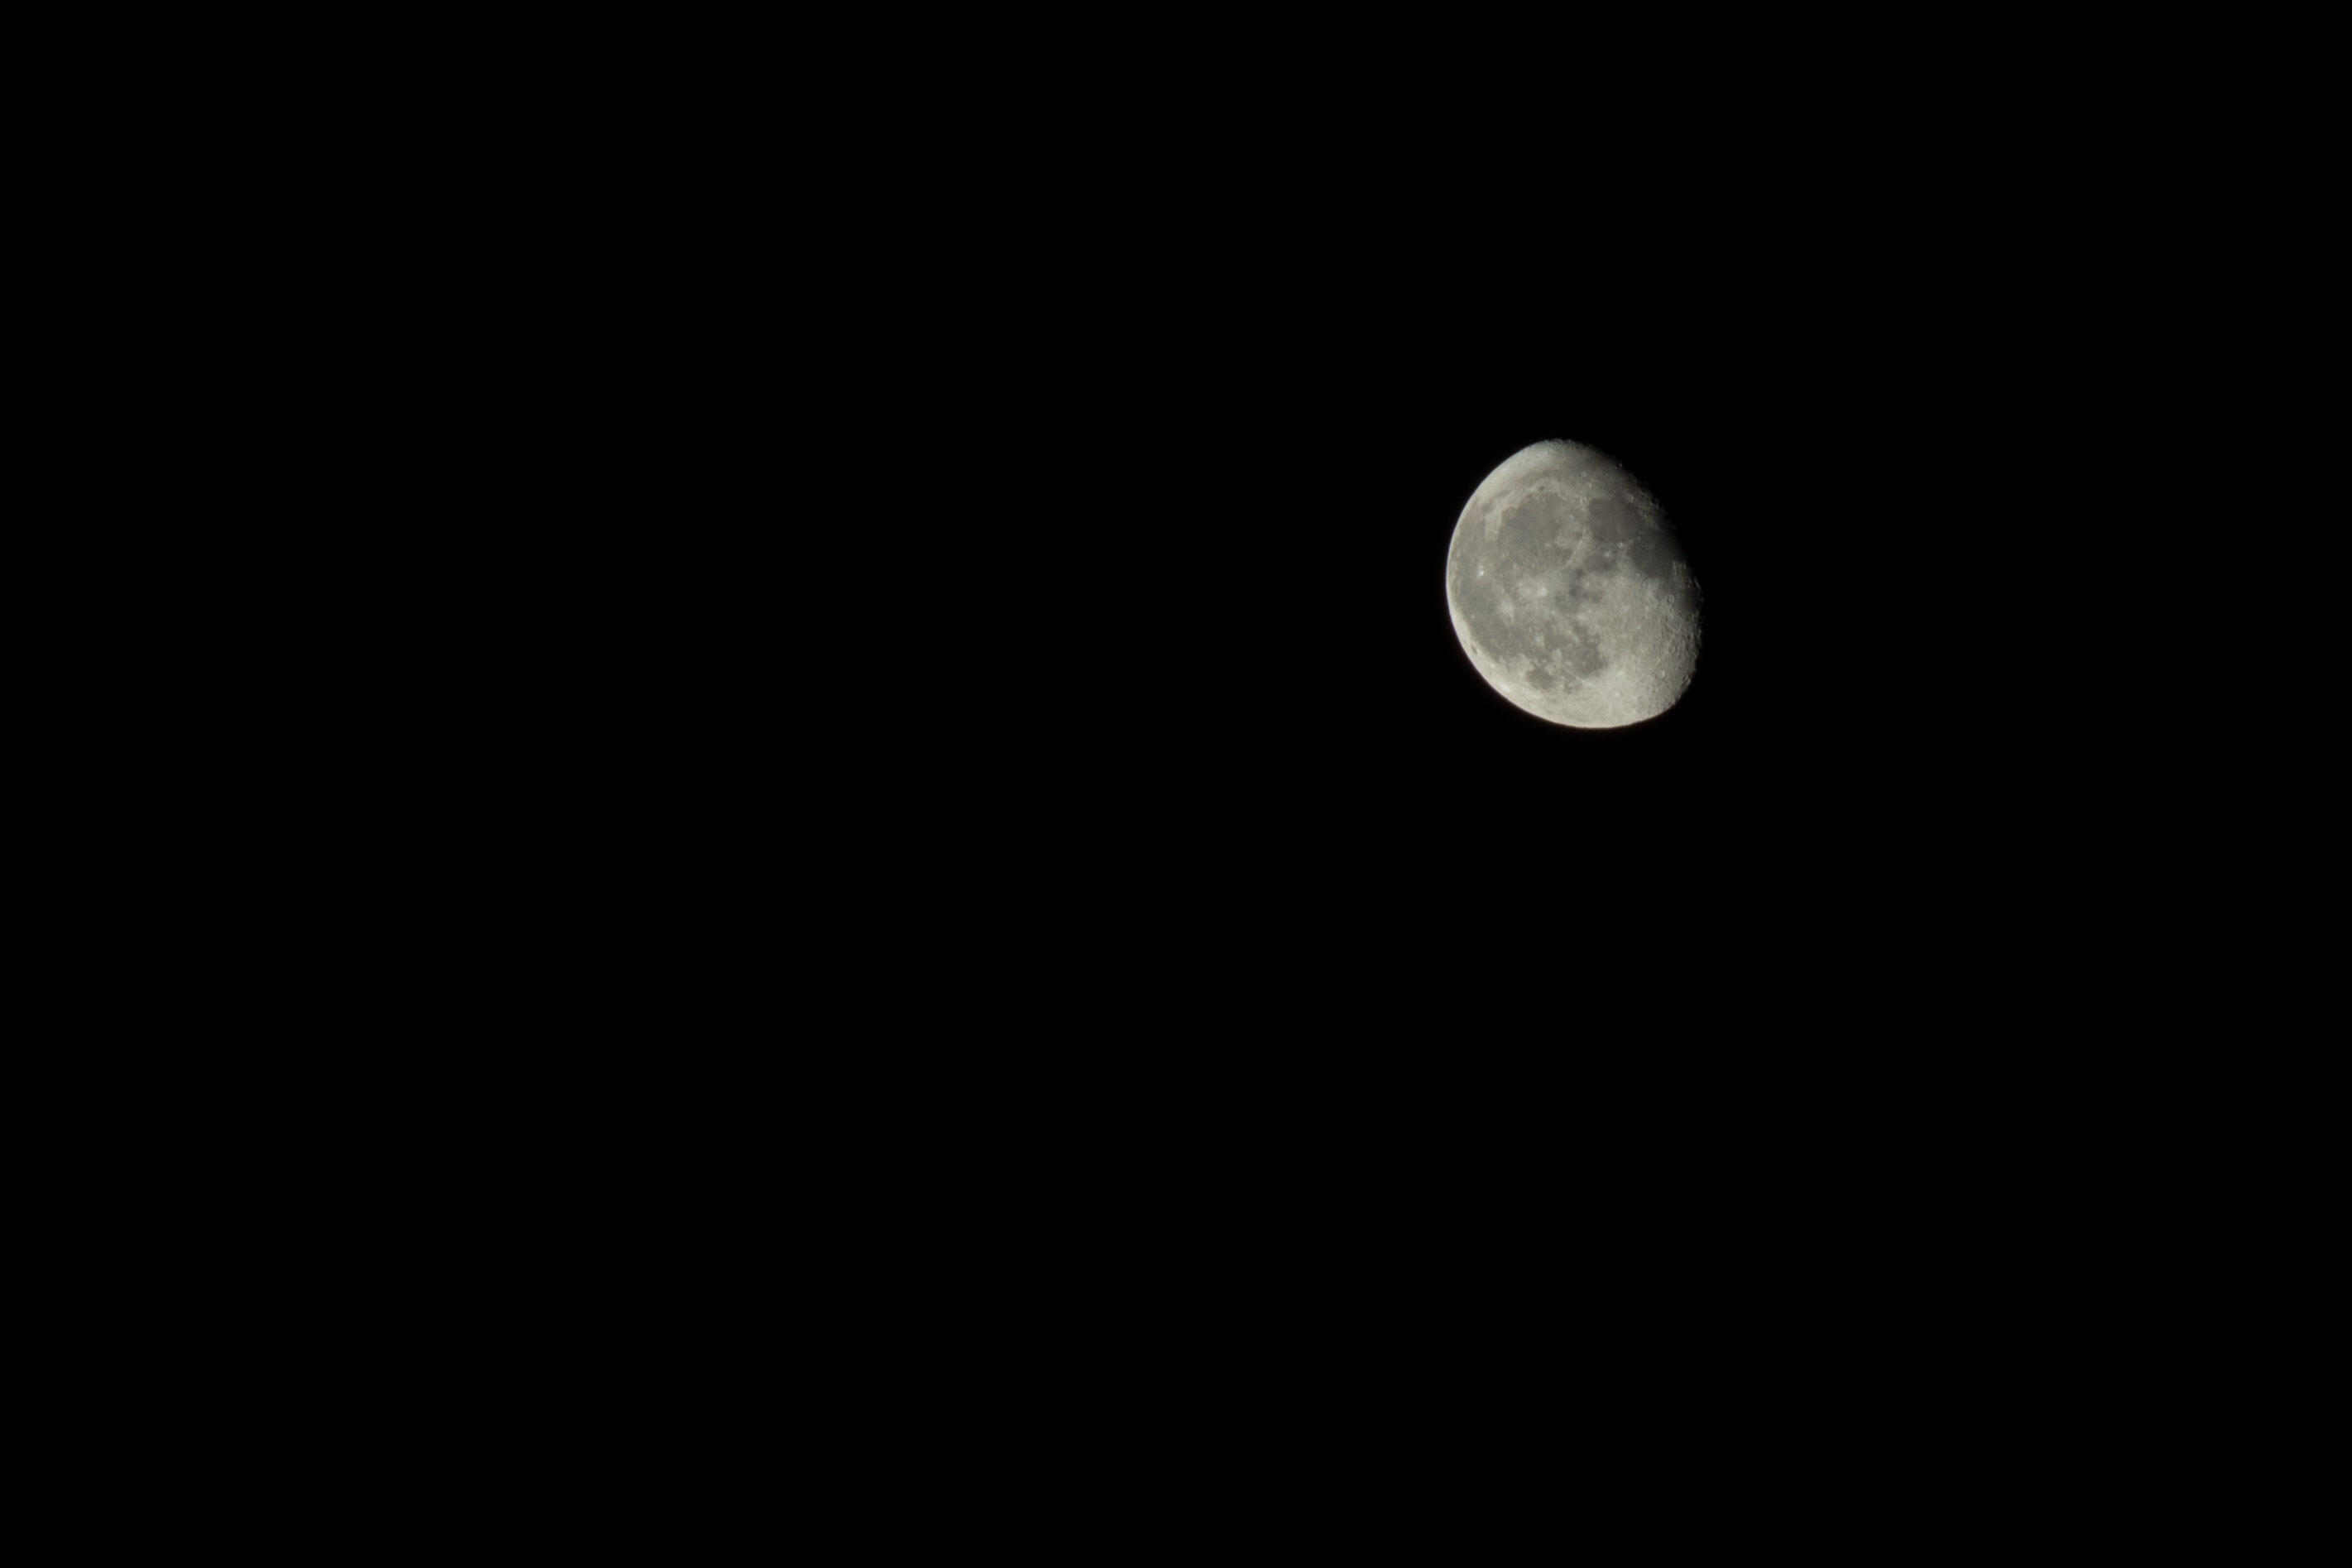 Gibbous moon against a pitch-black sky